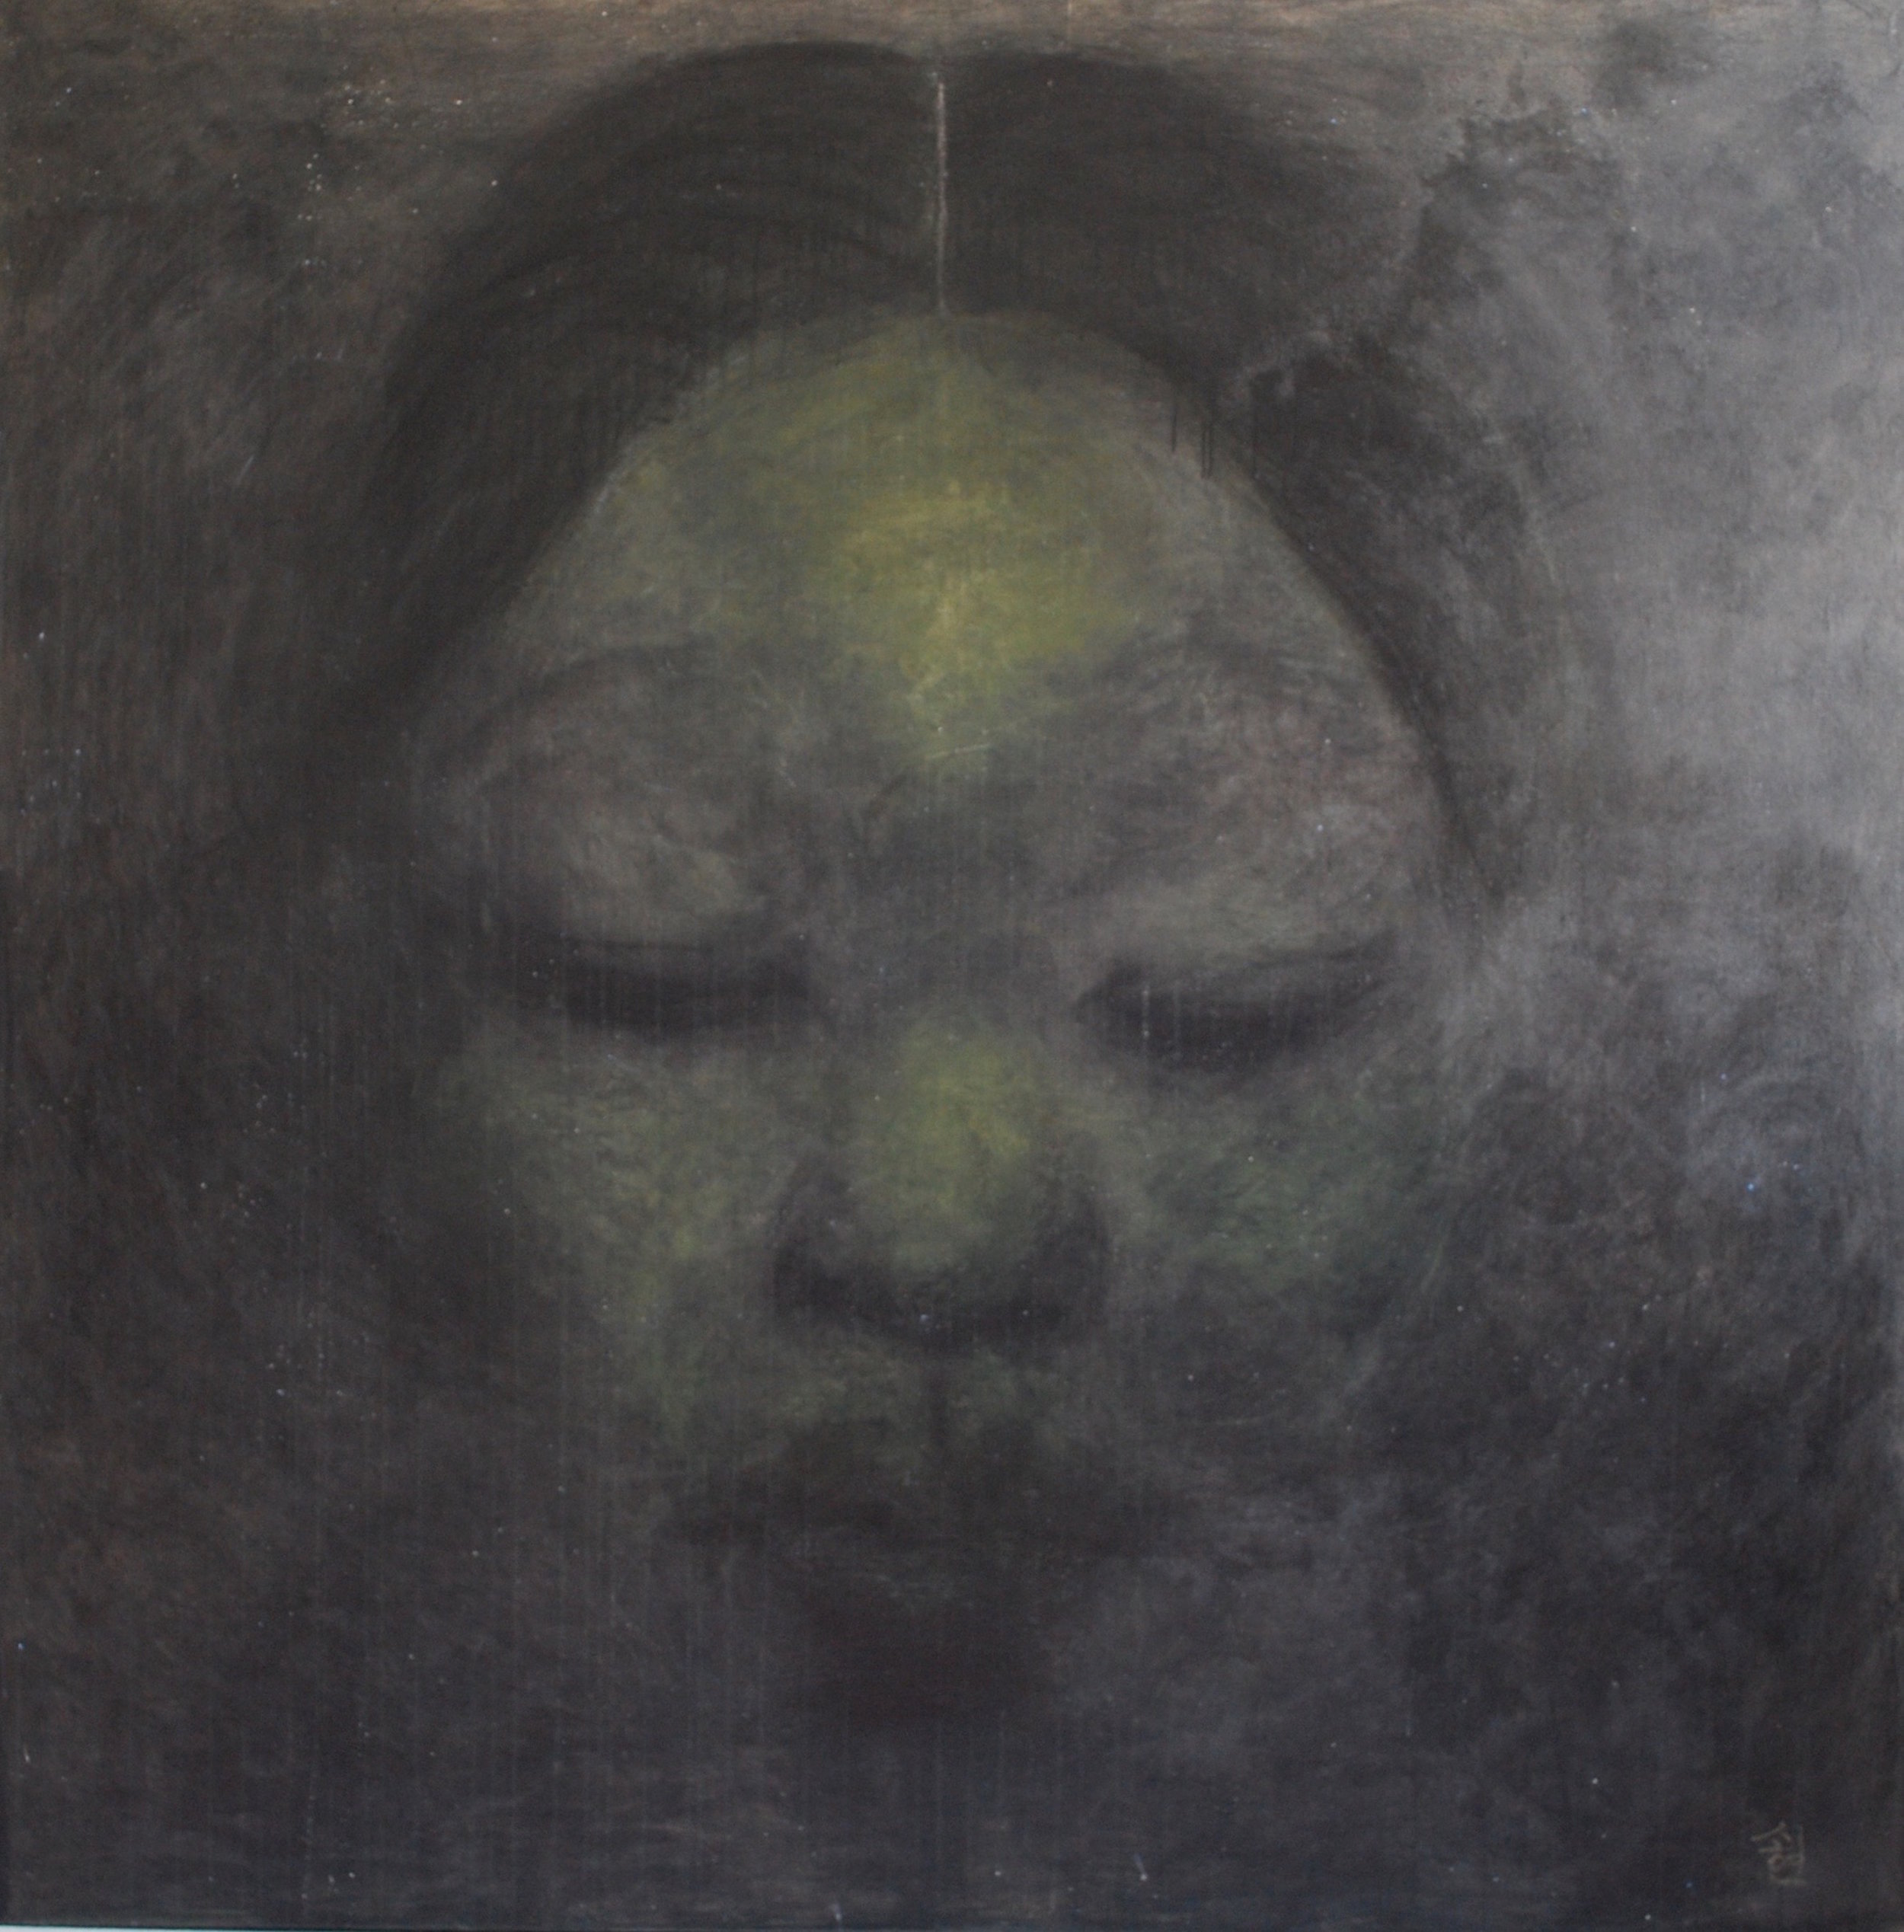 SoHyun Bae, A Woman of Josun Dynasty: Colossal Head I, 1998, charcoal, pure pigment on canvas, 81 x 81 inches